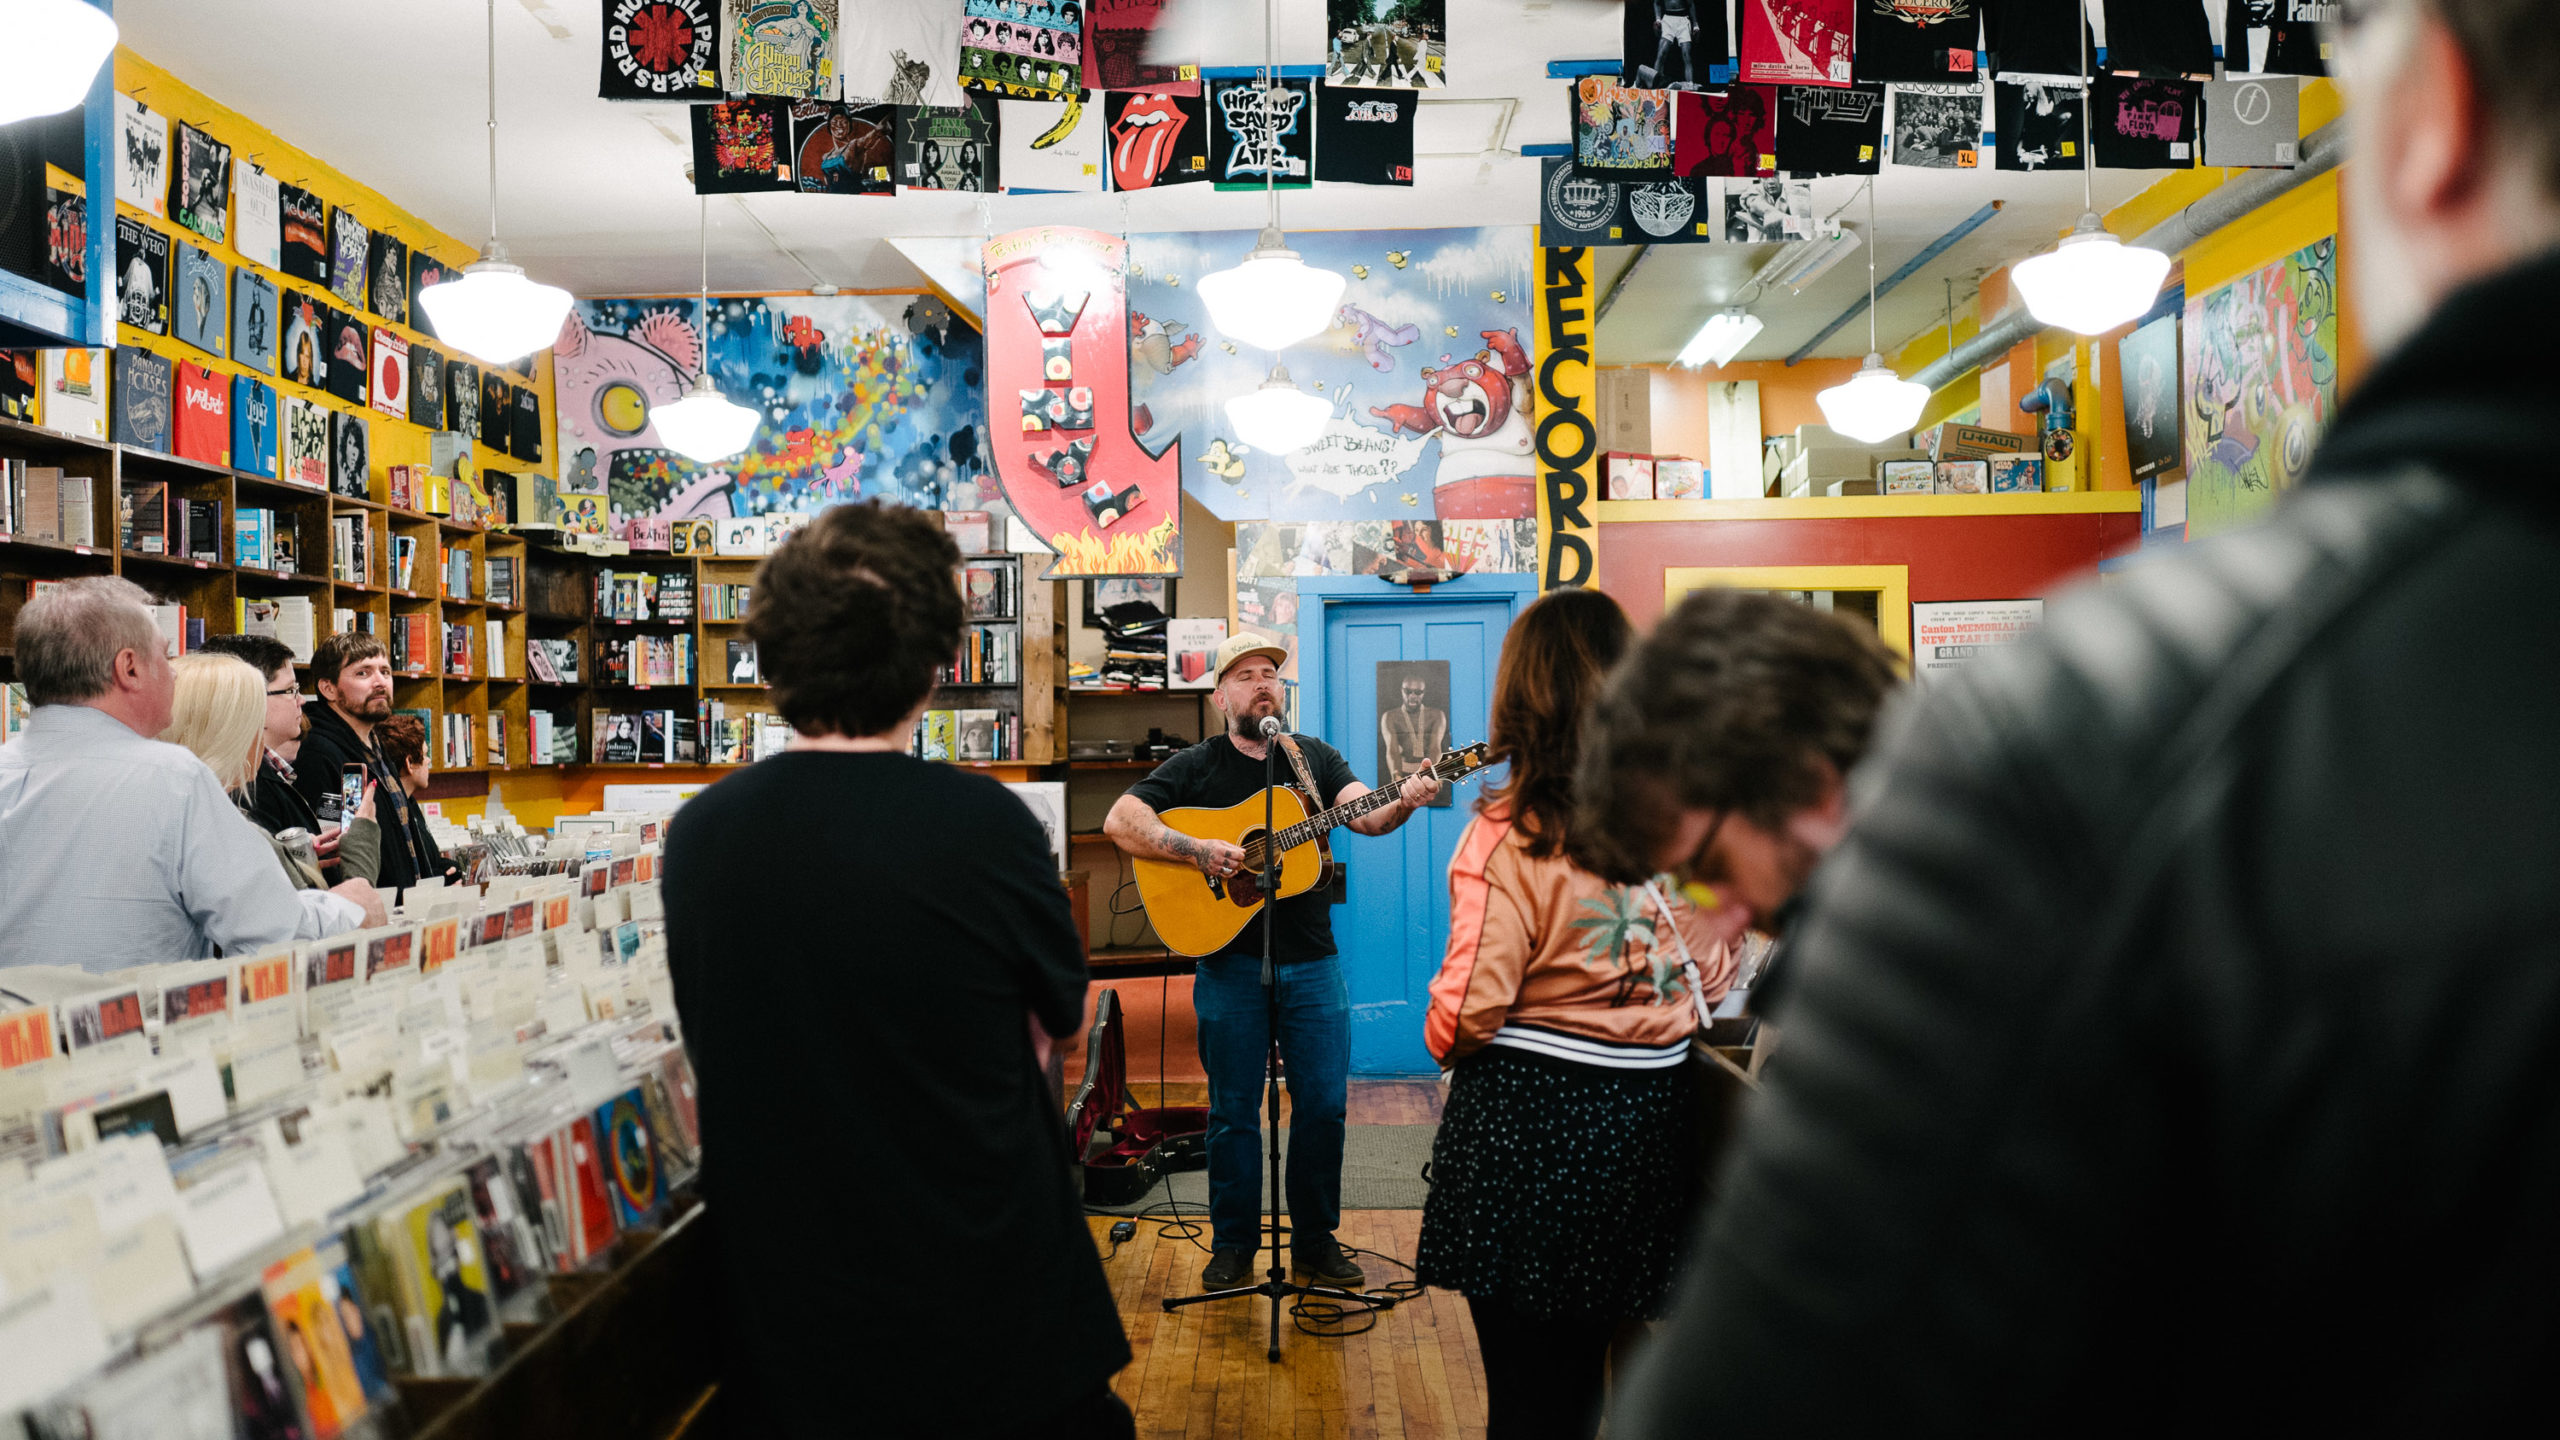 A man with an acoustic guitar gives a performance in a record store to a crowd